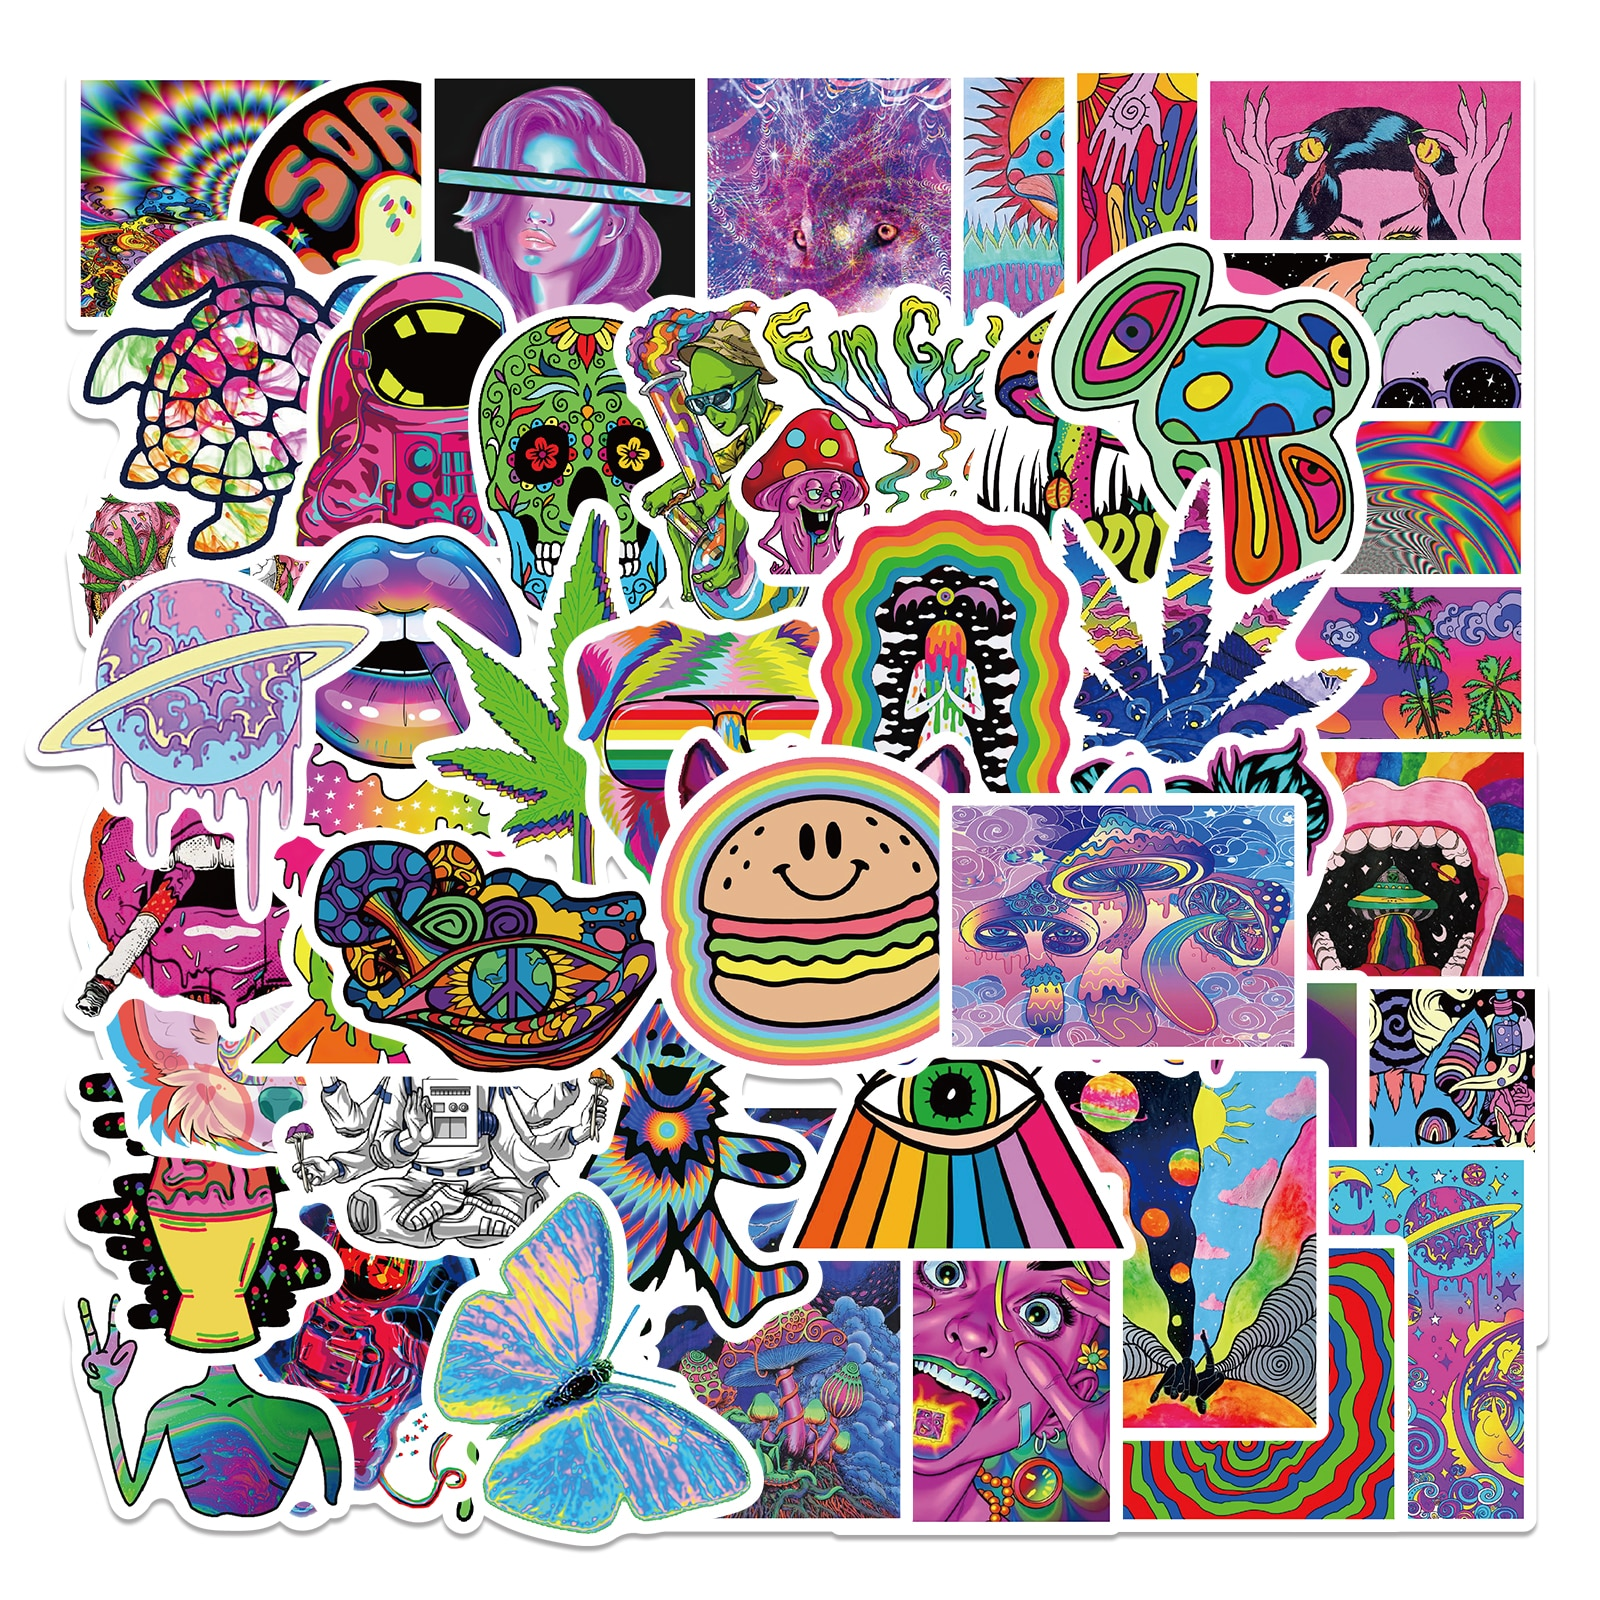 AliExpress - 25/52PCS Cartoon Colorful Psychedelic Trippy Stickers Aesthetics Laptop Guitar Luggage Phone Graffiti Sticker Decal Kid Toy